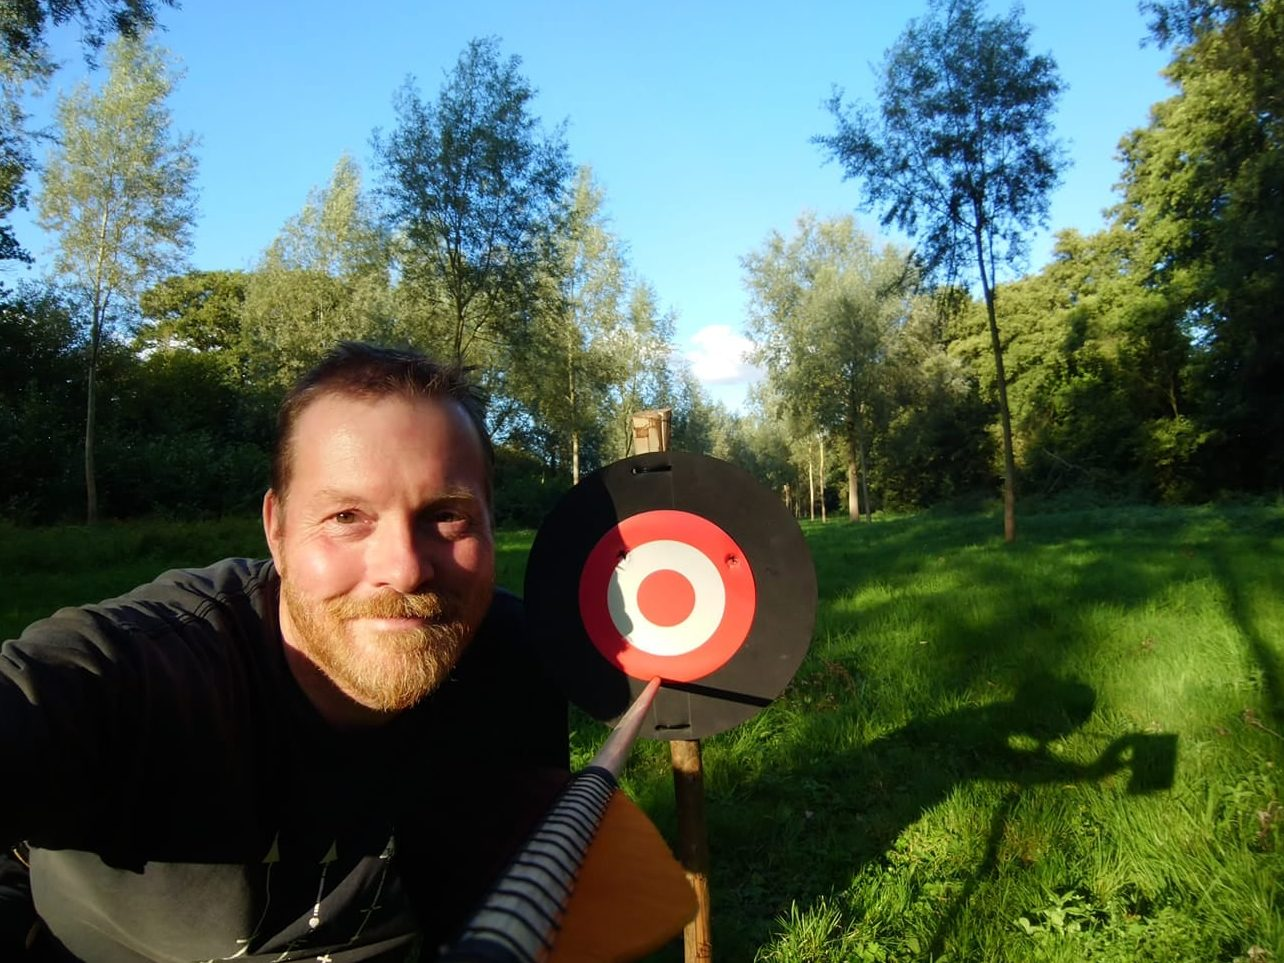 Man smiling with an arrow in a very small target